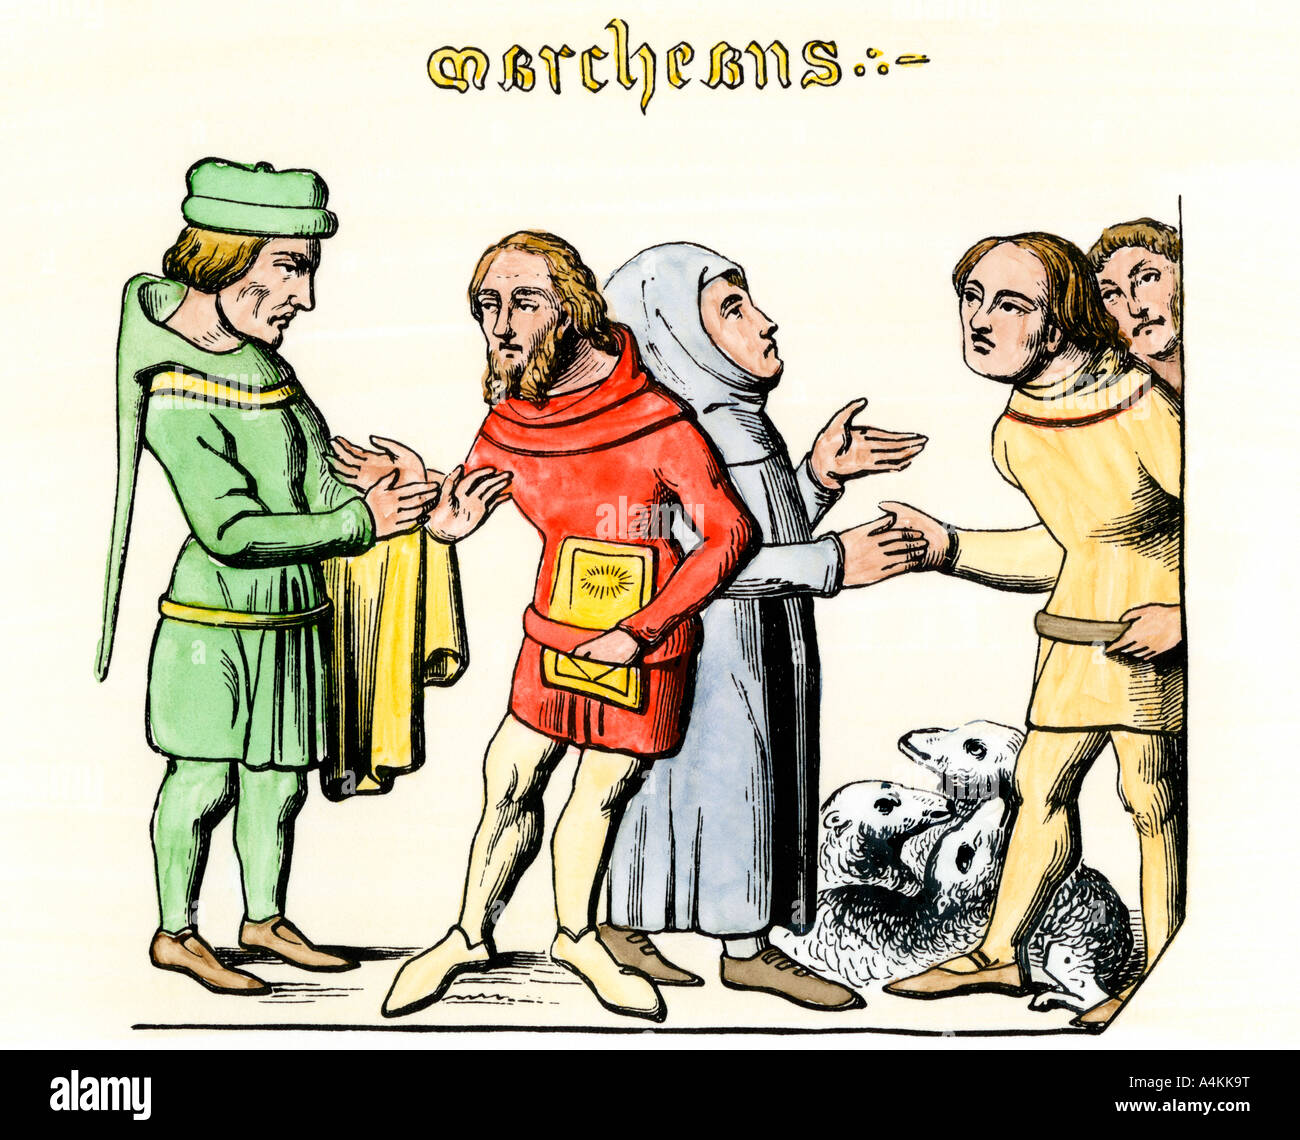 Merchants bartering sheep for goods in the Middle Ages. Hand-colored woodcut - Stock Image